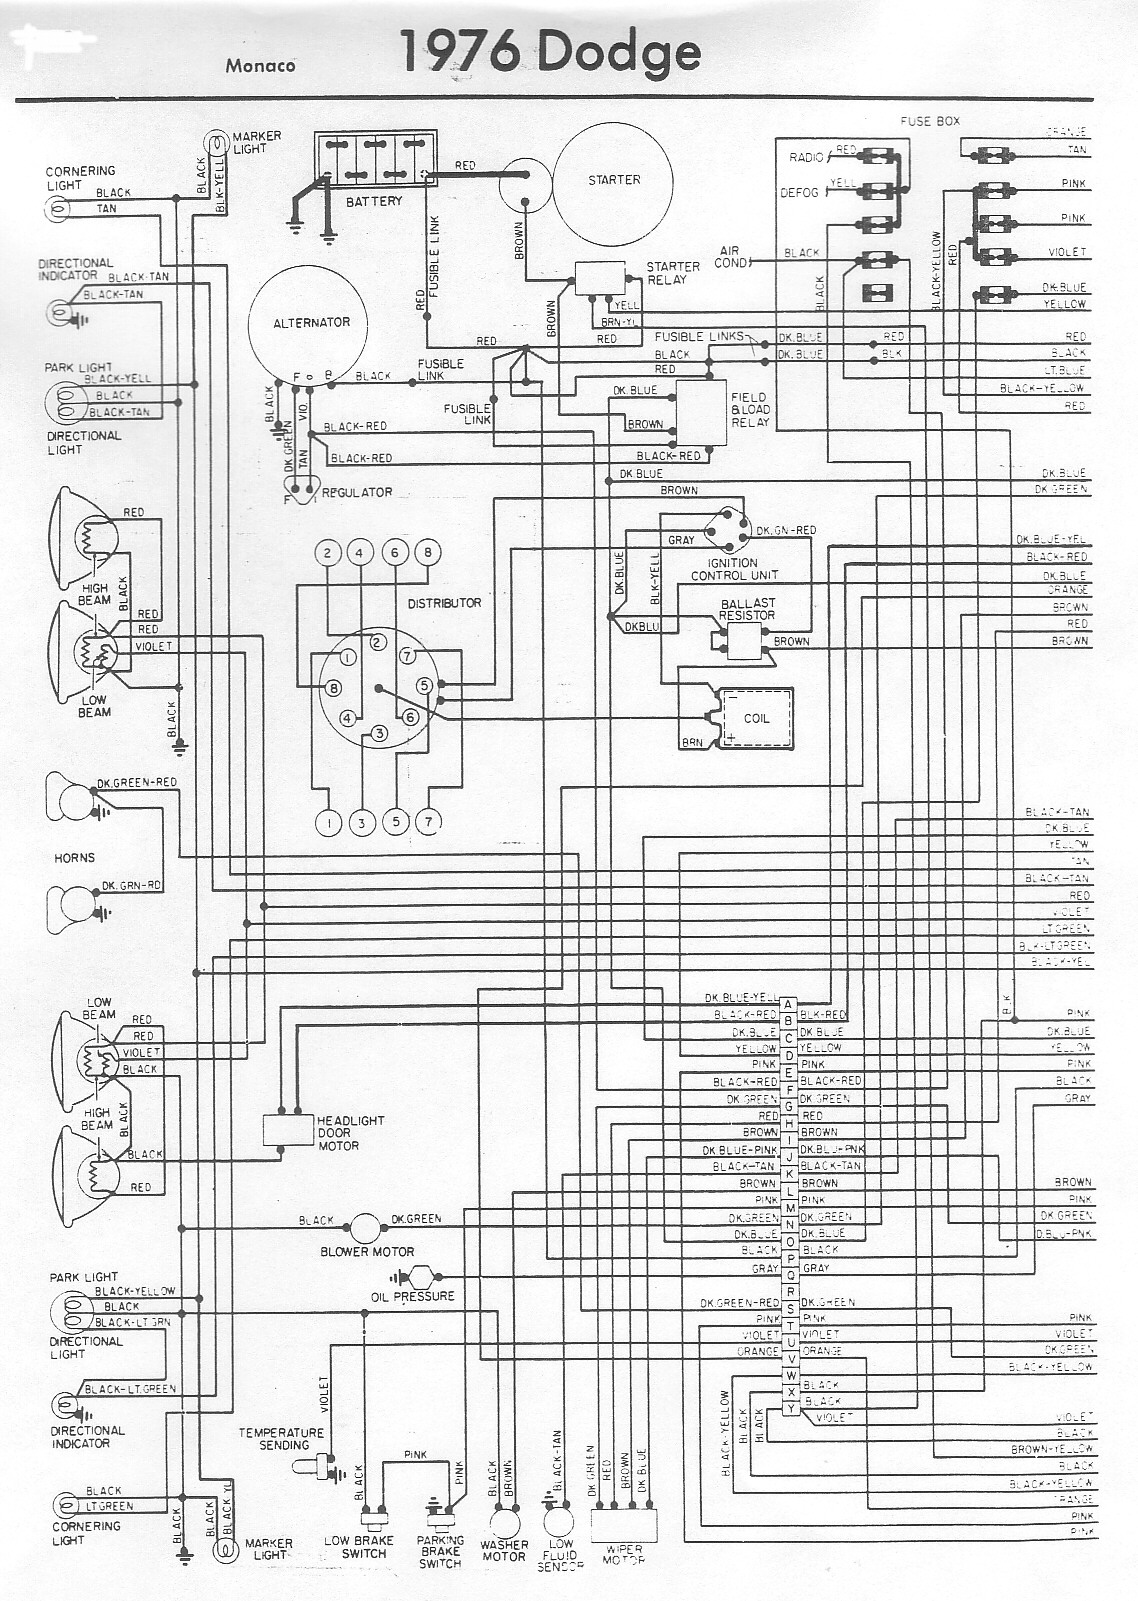 hight resolution of 1979 dodge wiring schematic wire management wiring diagram 1979 dodge wiring diagram wire management